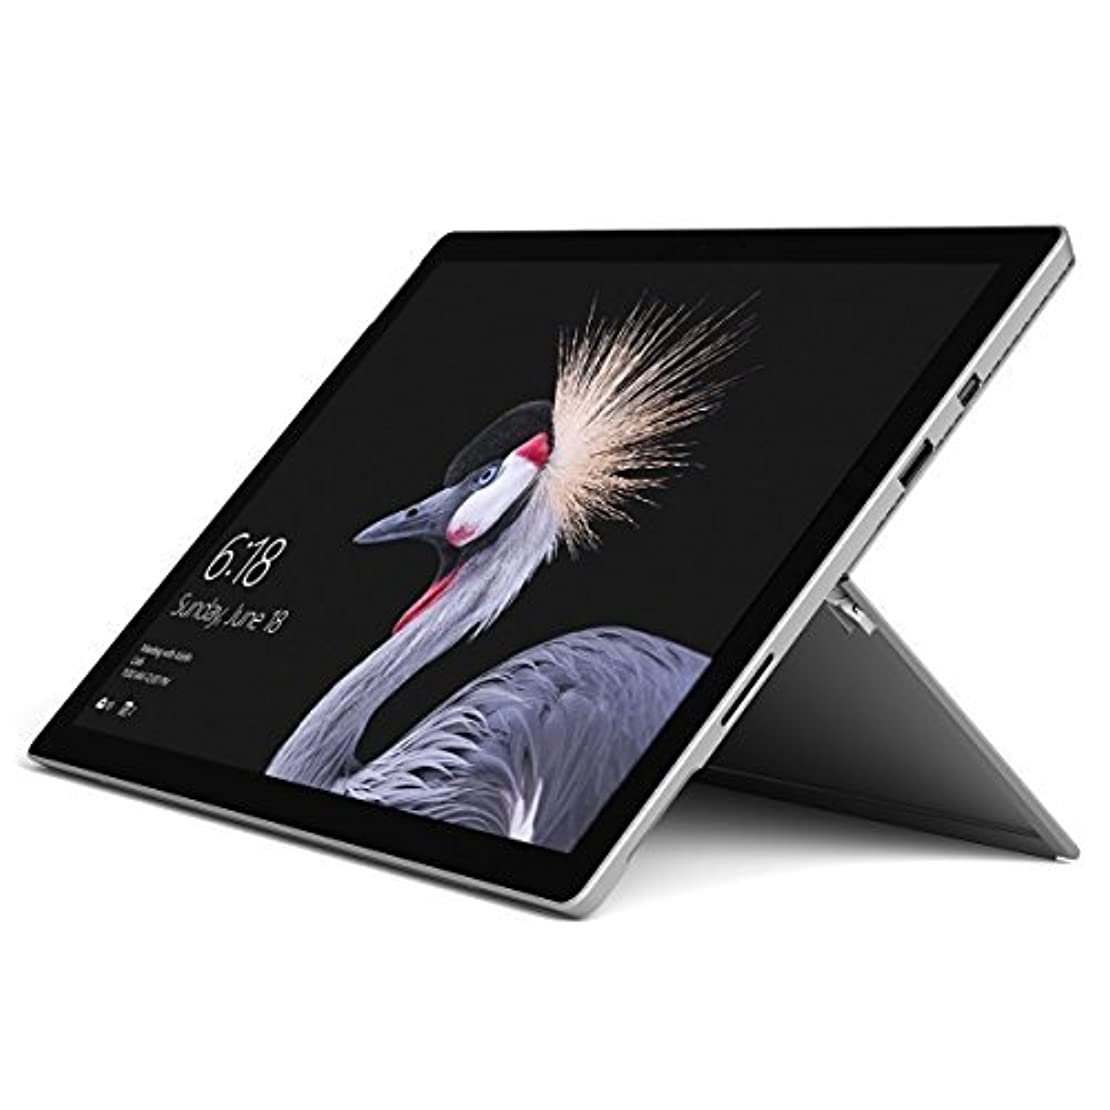 金属規定デッキMicrosoft Surface Pro Intel Core i5 4GB RAM 128GB SSD Windows 10 Newest Version (Certified Refurbished) [並行輸入品]